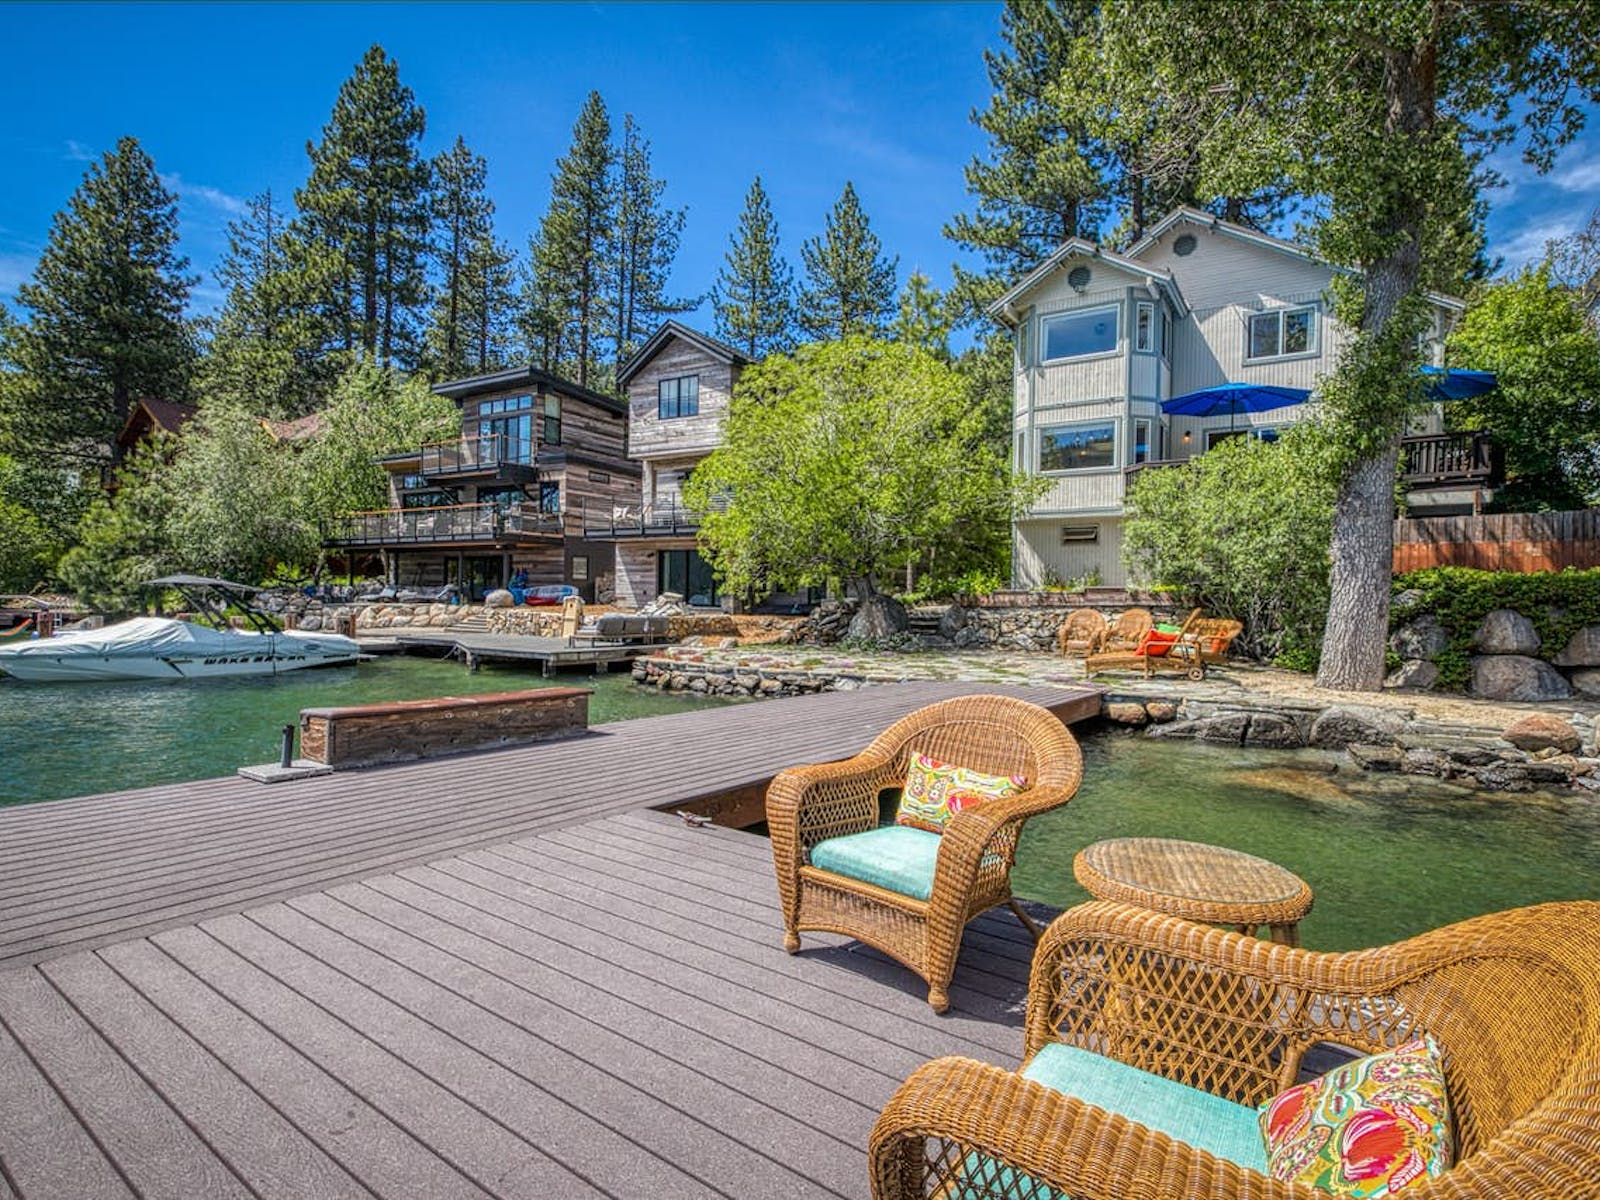 donner lake vacation home with private dock and ample outdoor seating